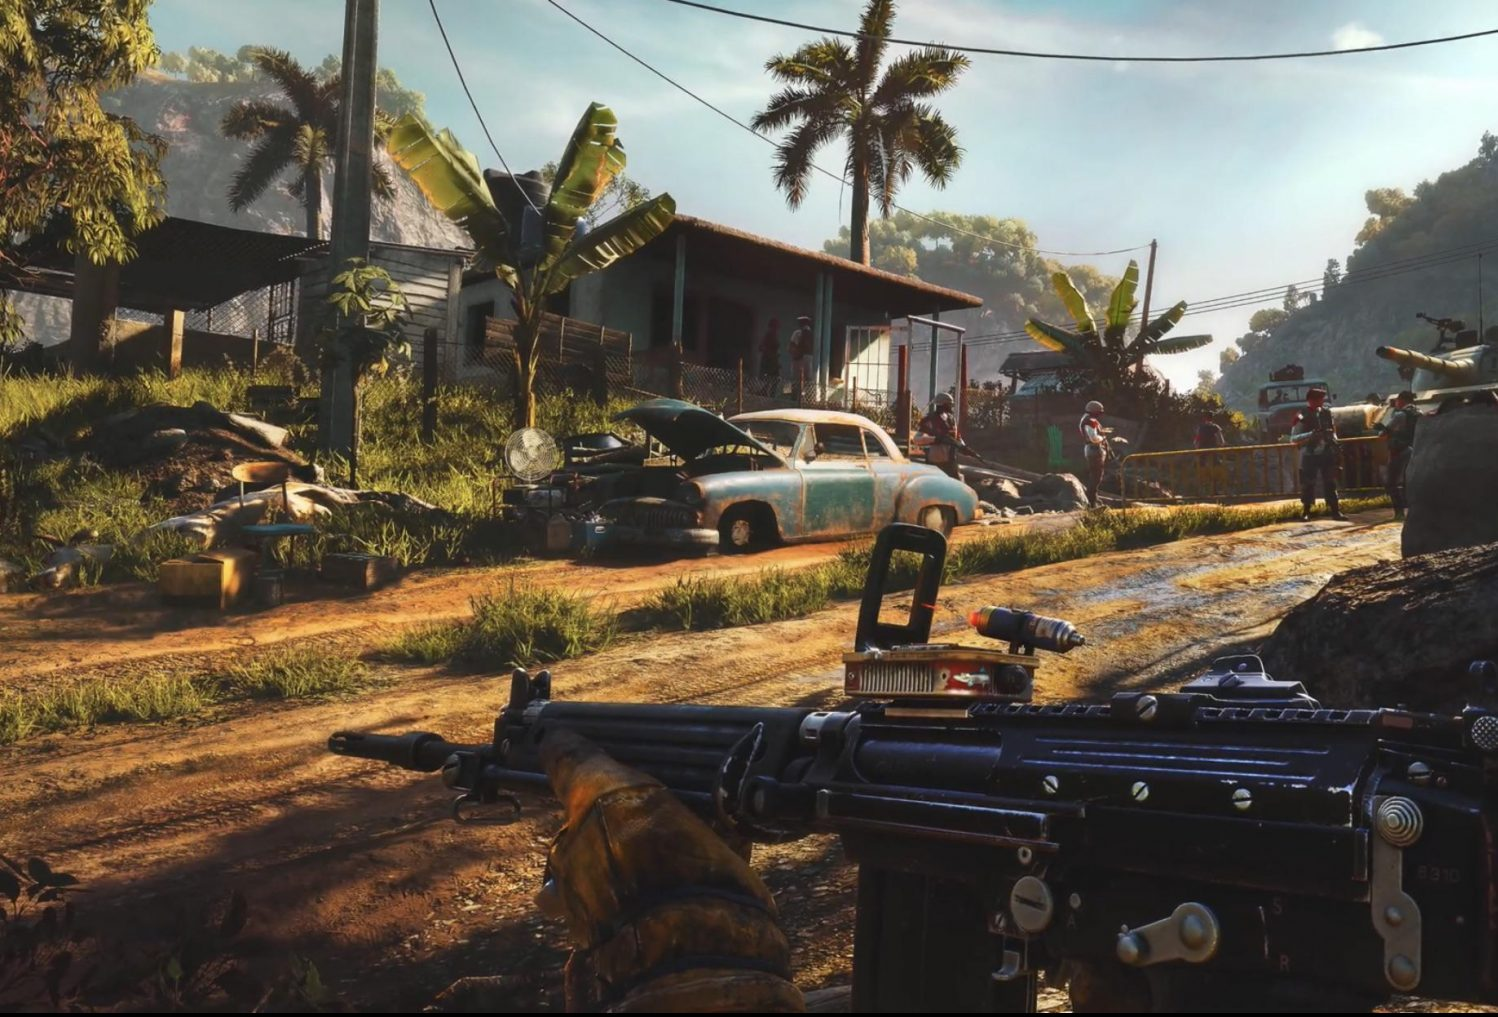 A screen shot from the lasted installment of the 'Far Cry' franchise showing a character holding a gun while running